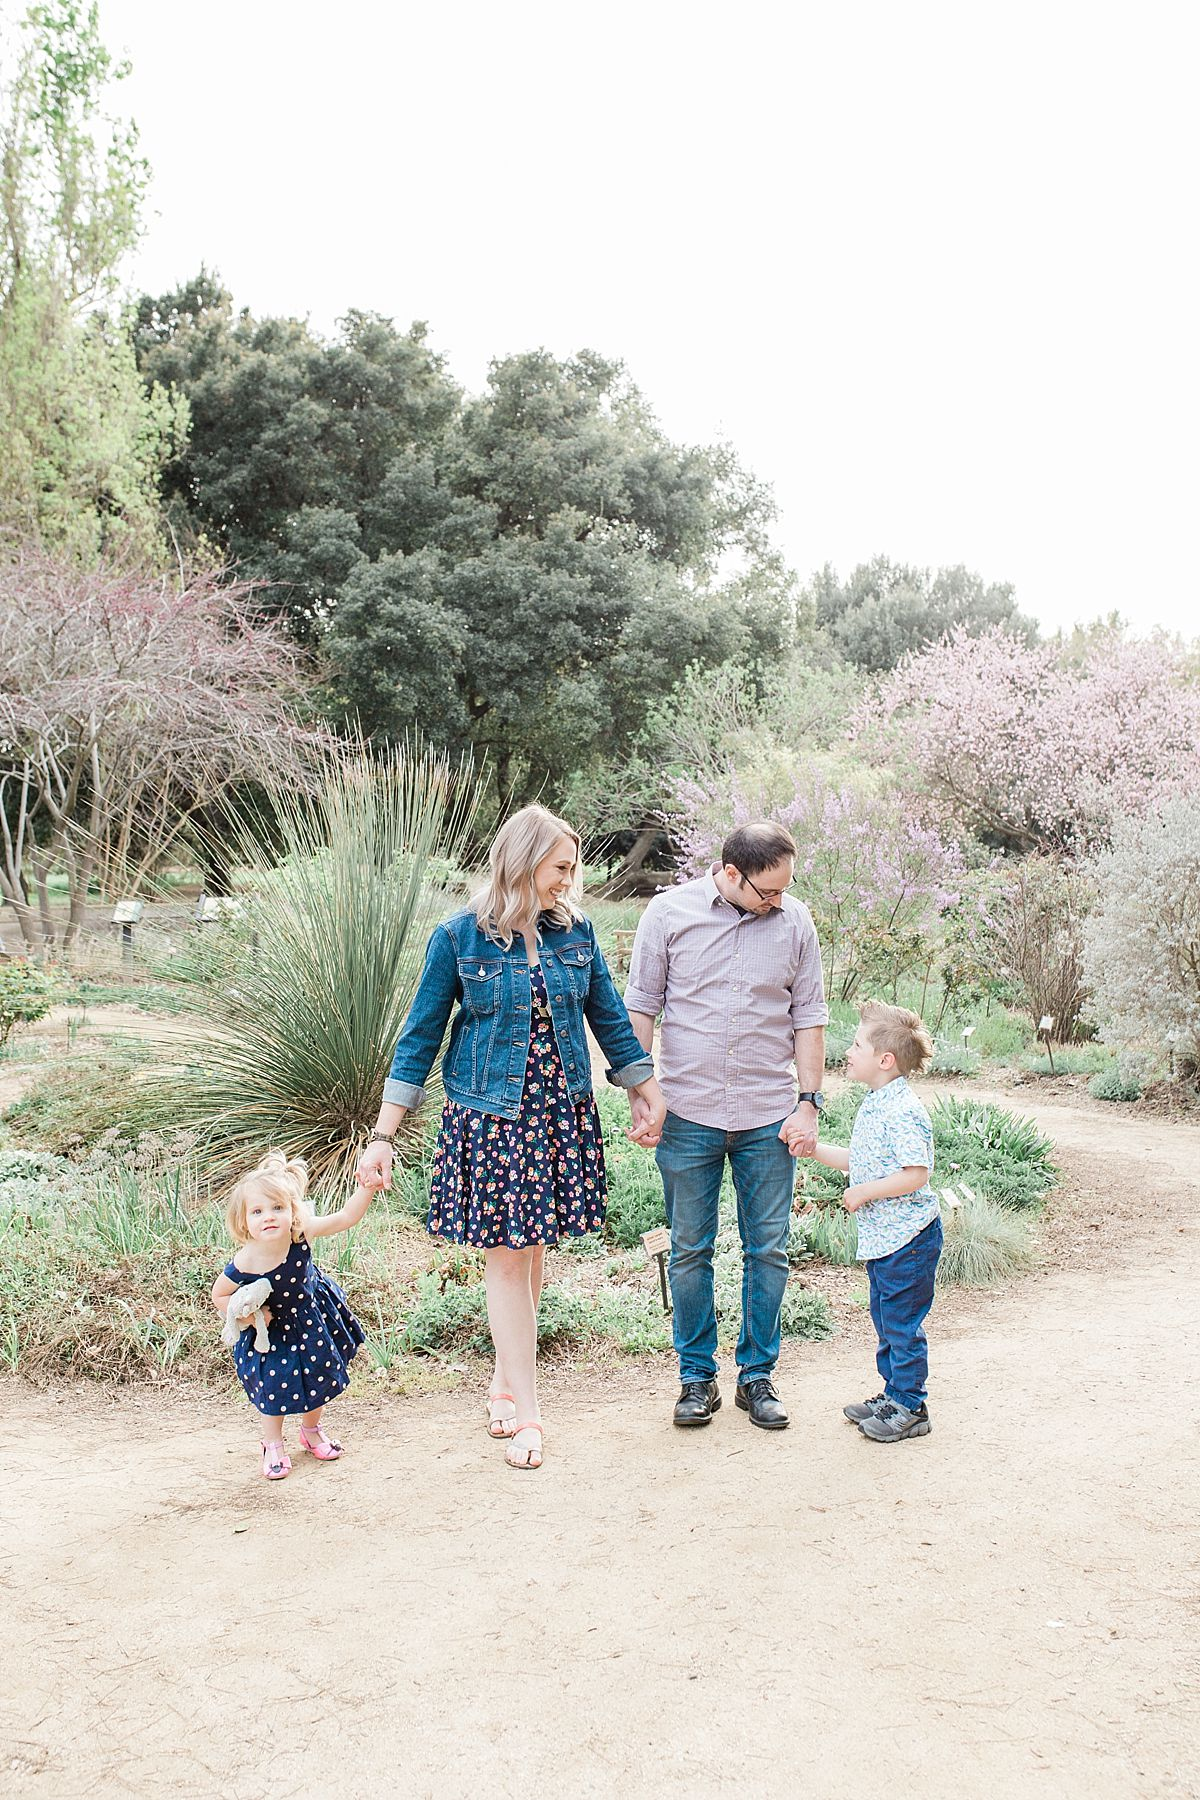 Davis Family Portraits at UC Davis Arboretum - Padovani Family - Ashley Baumgartner - Davis Family Photographer_0005.jpg